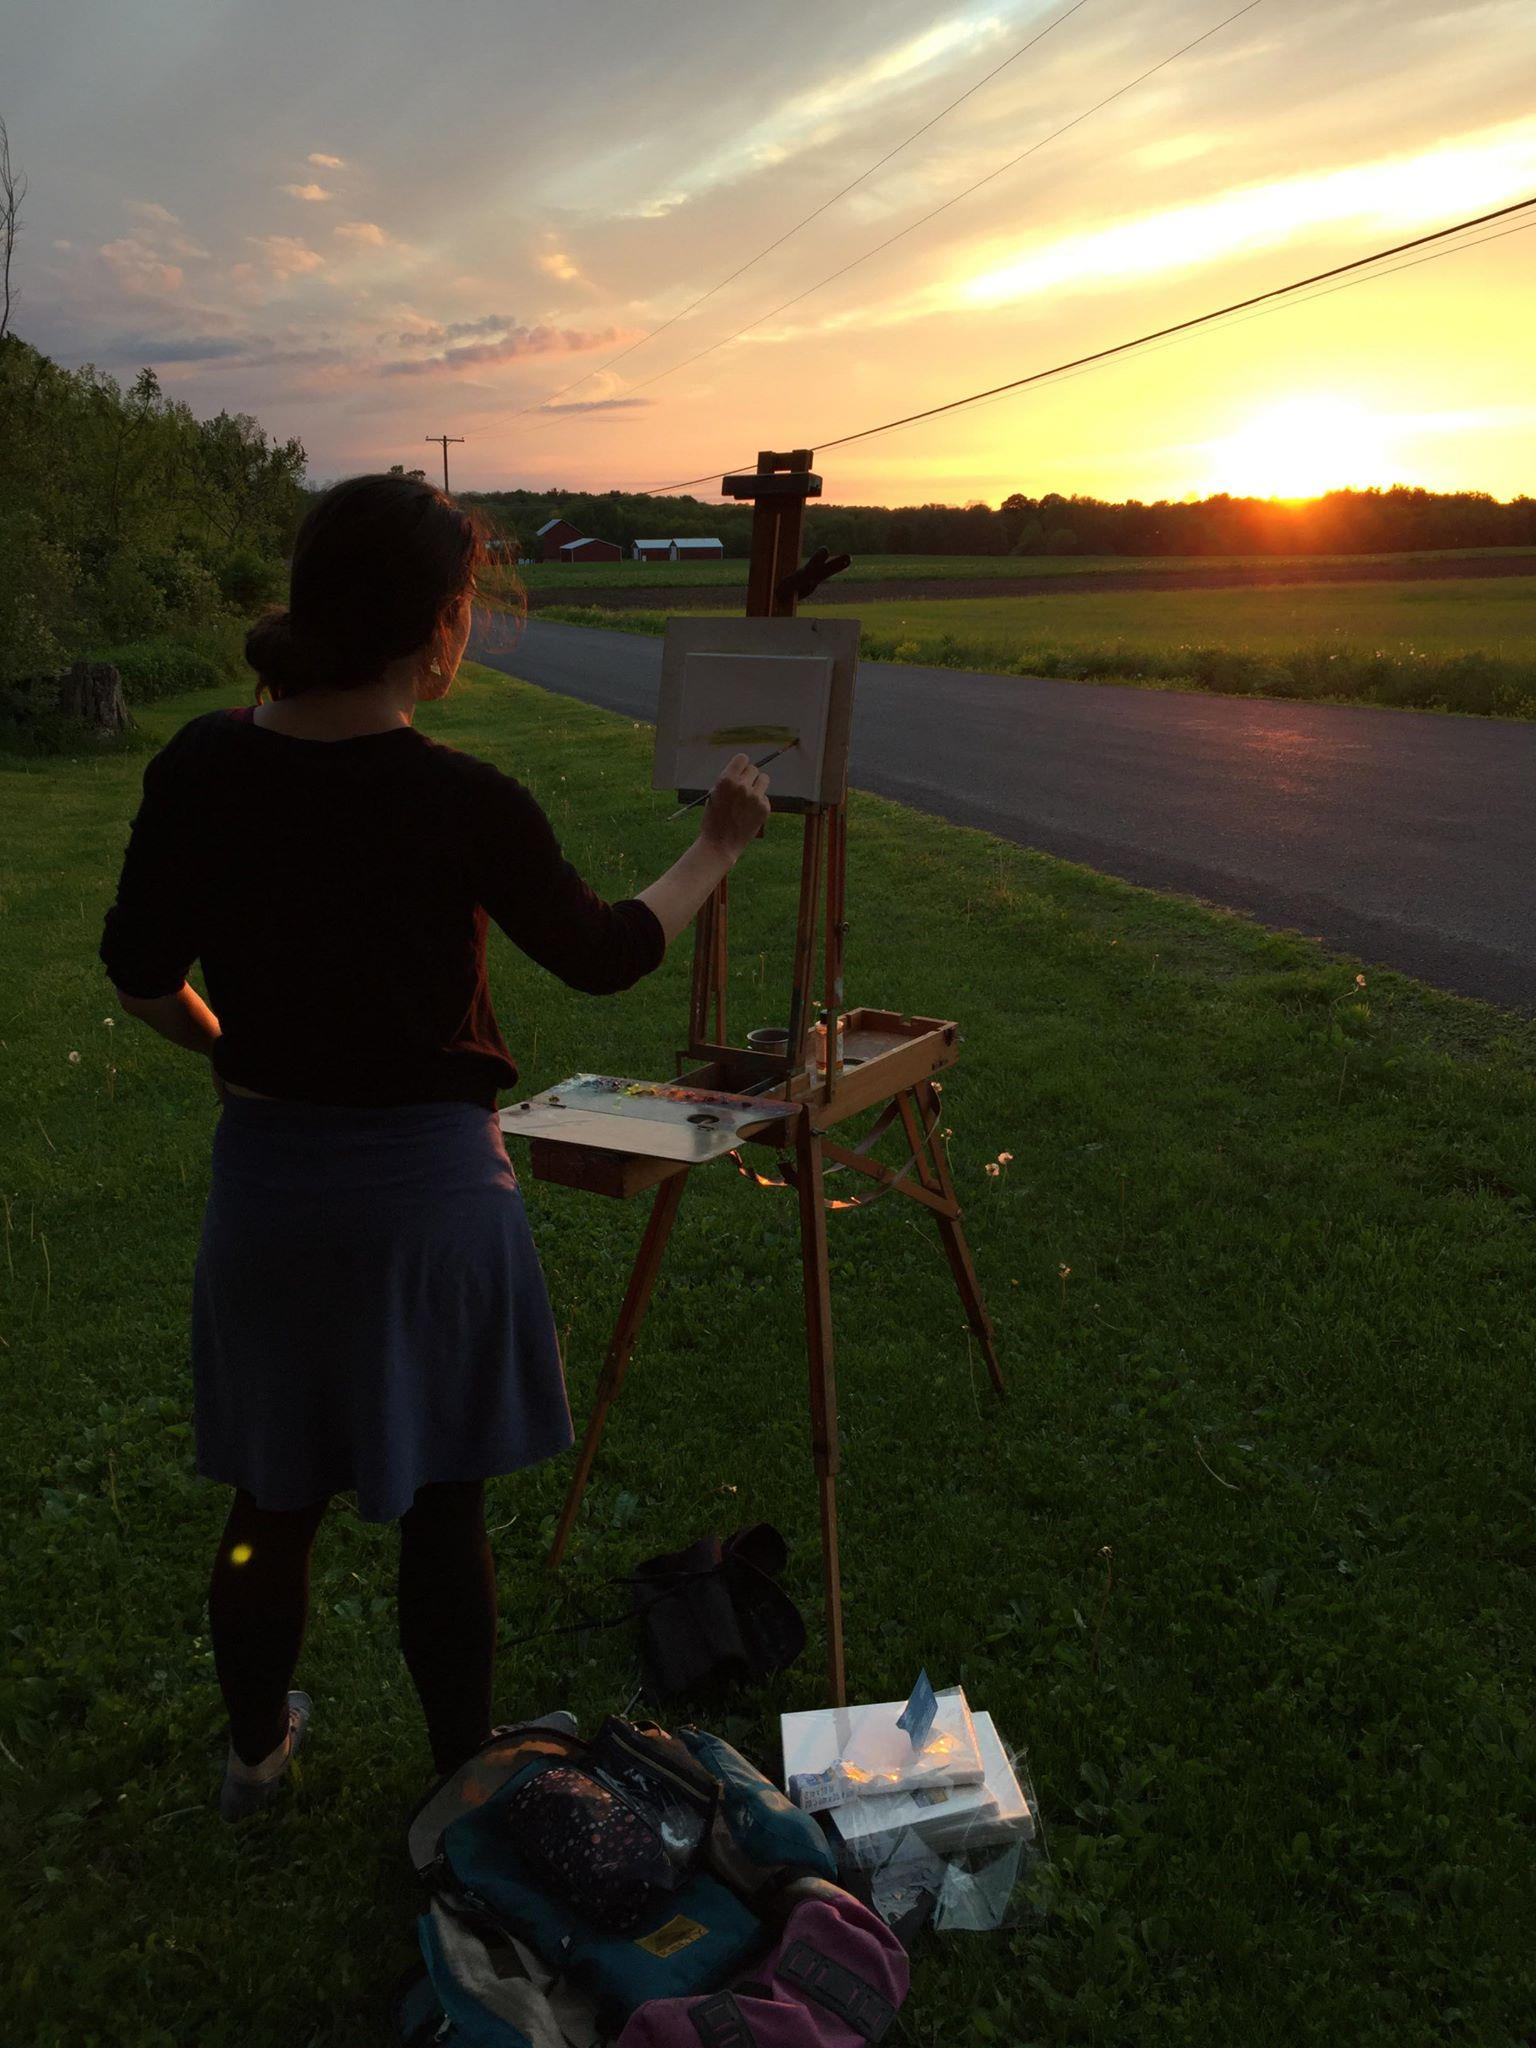 me painting a sunset on a farm road in Groton, New York